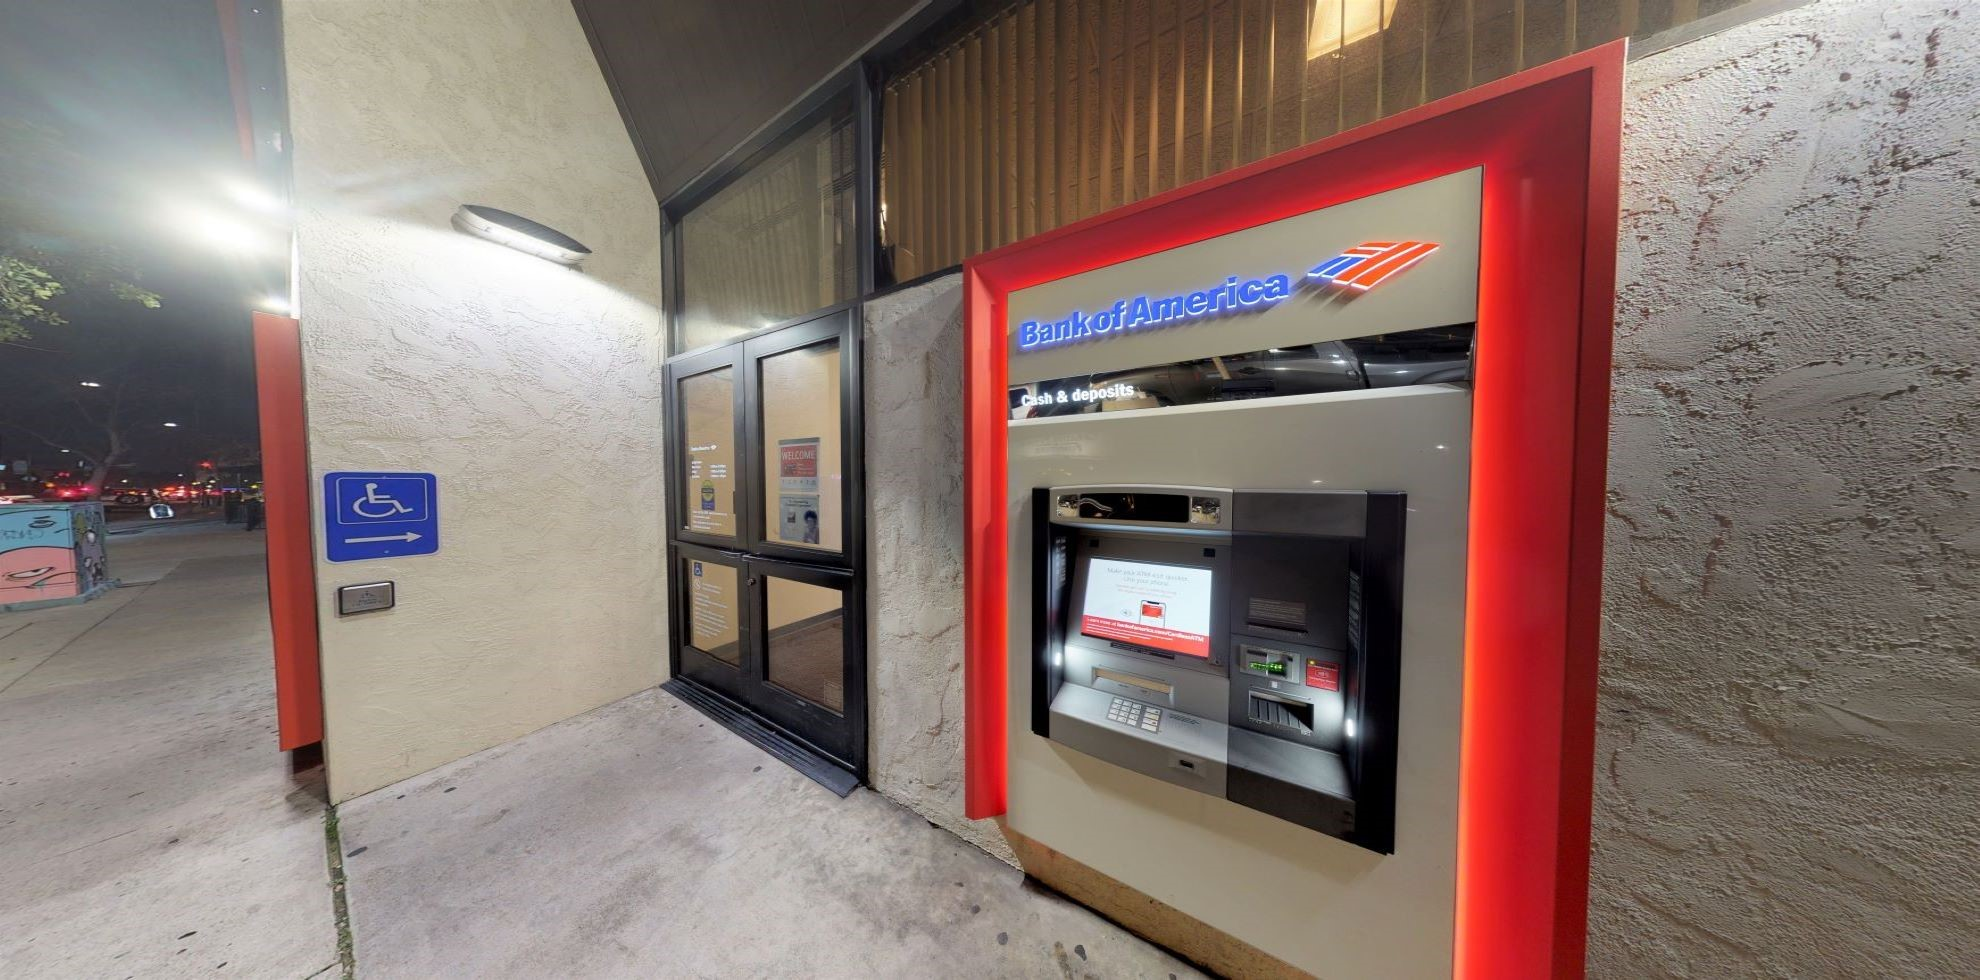 Bank of America financial center with walk-up ATM   3101 University Ave, San Diego, CA 92104